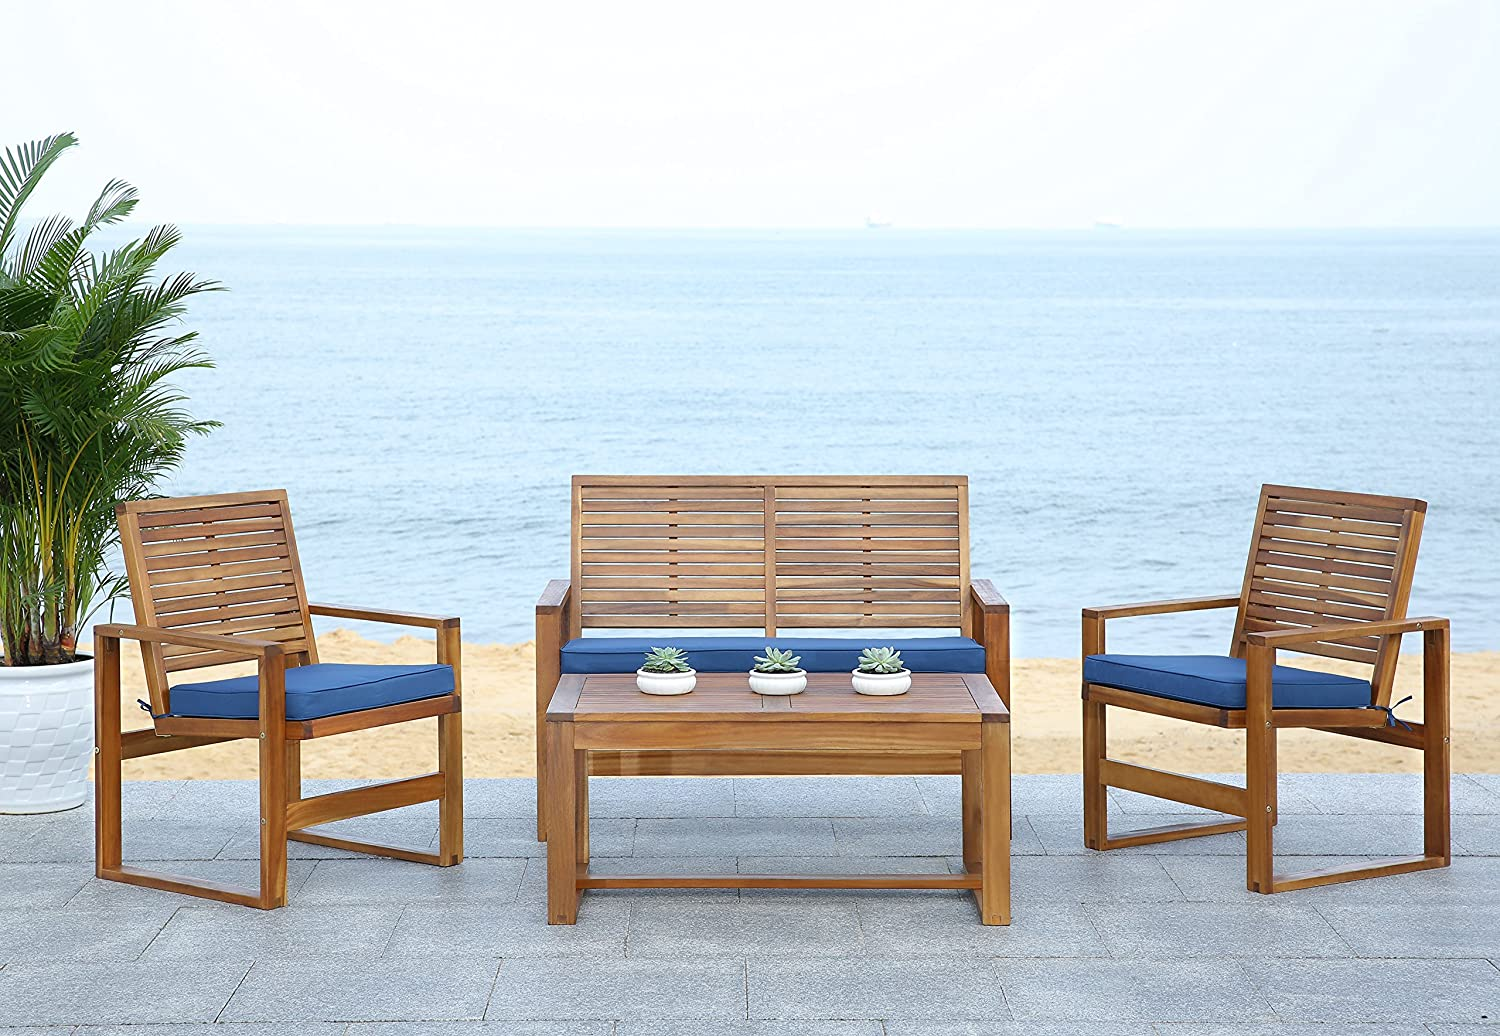 Outstanding Safavieh Home Collection Hailey Outdoor Living 4 Piece Acacia Patio Furniture Set Brown And Navy Gmtry Best Dining Table And Chair Ideas Images Gmtryco